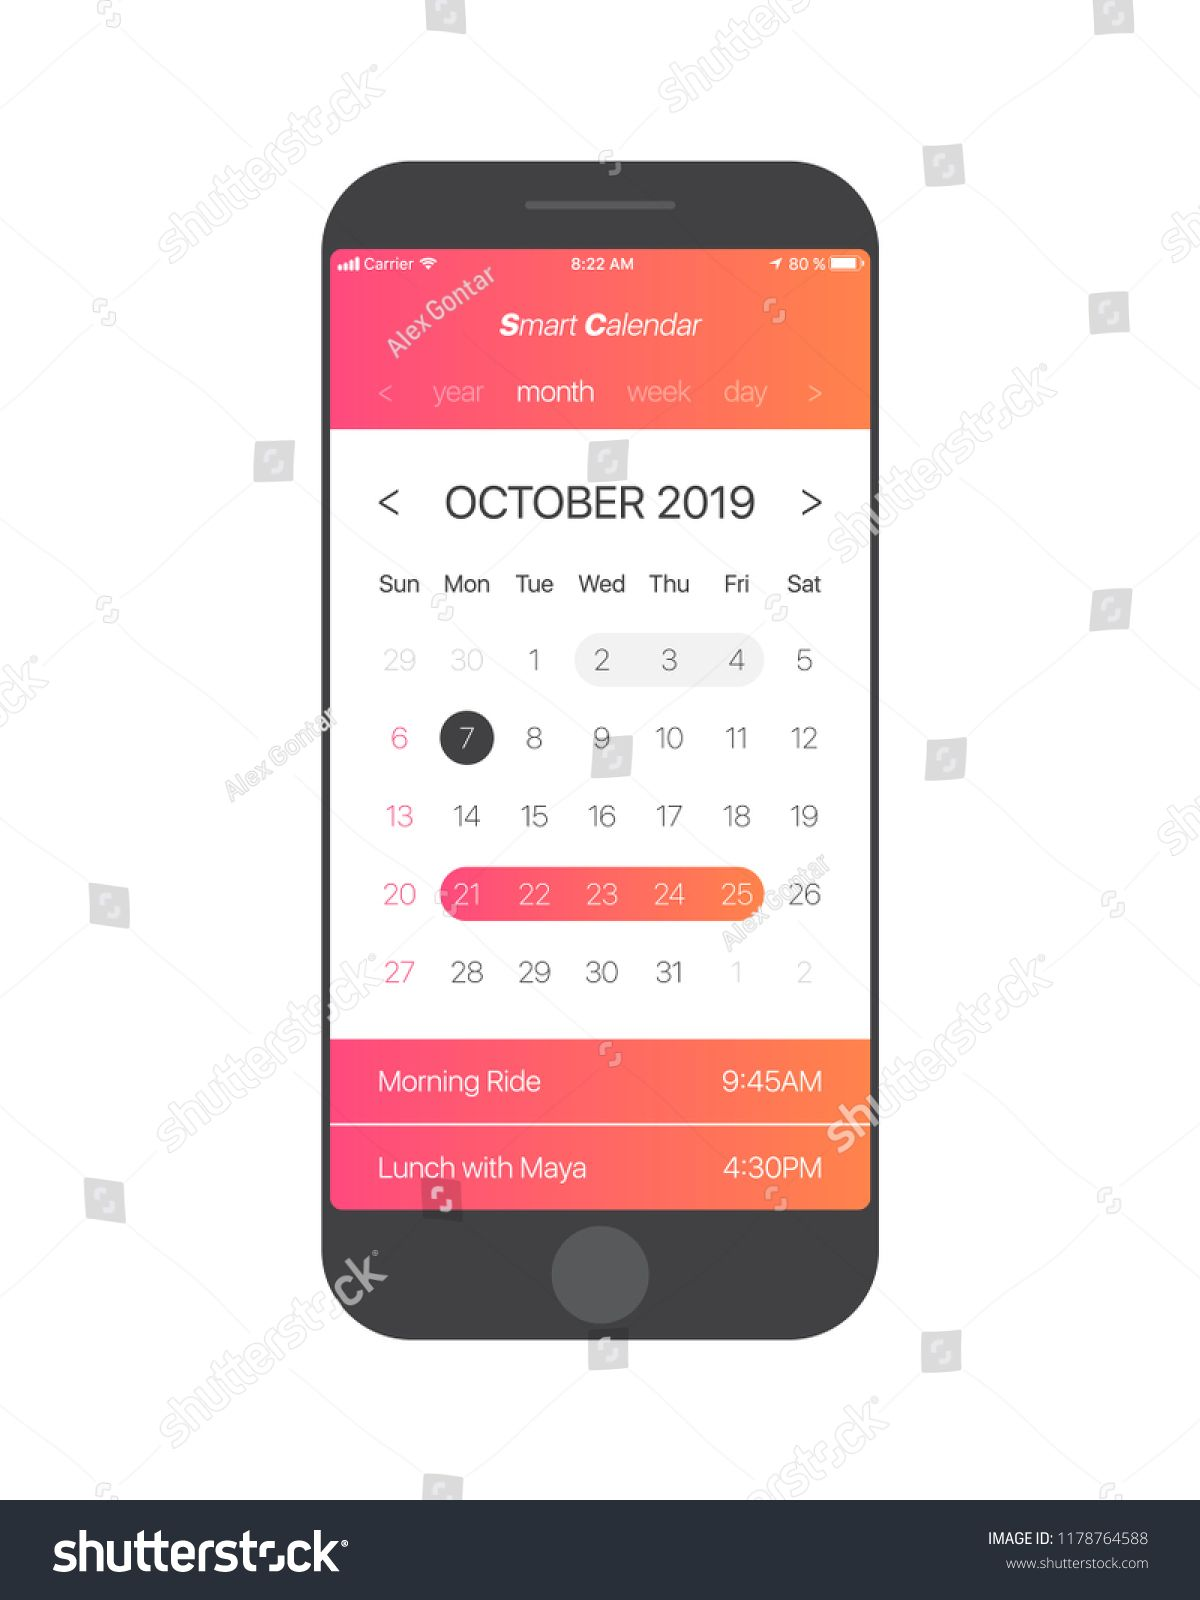 Calendar 2019 App IPhone Apple IOs and Android Smart Calendar App Concept October